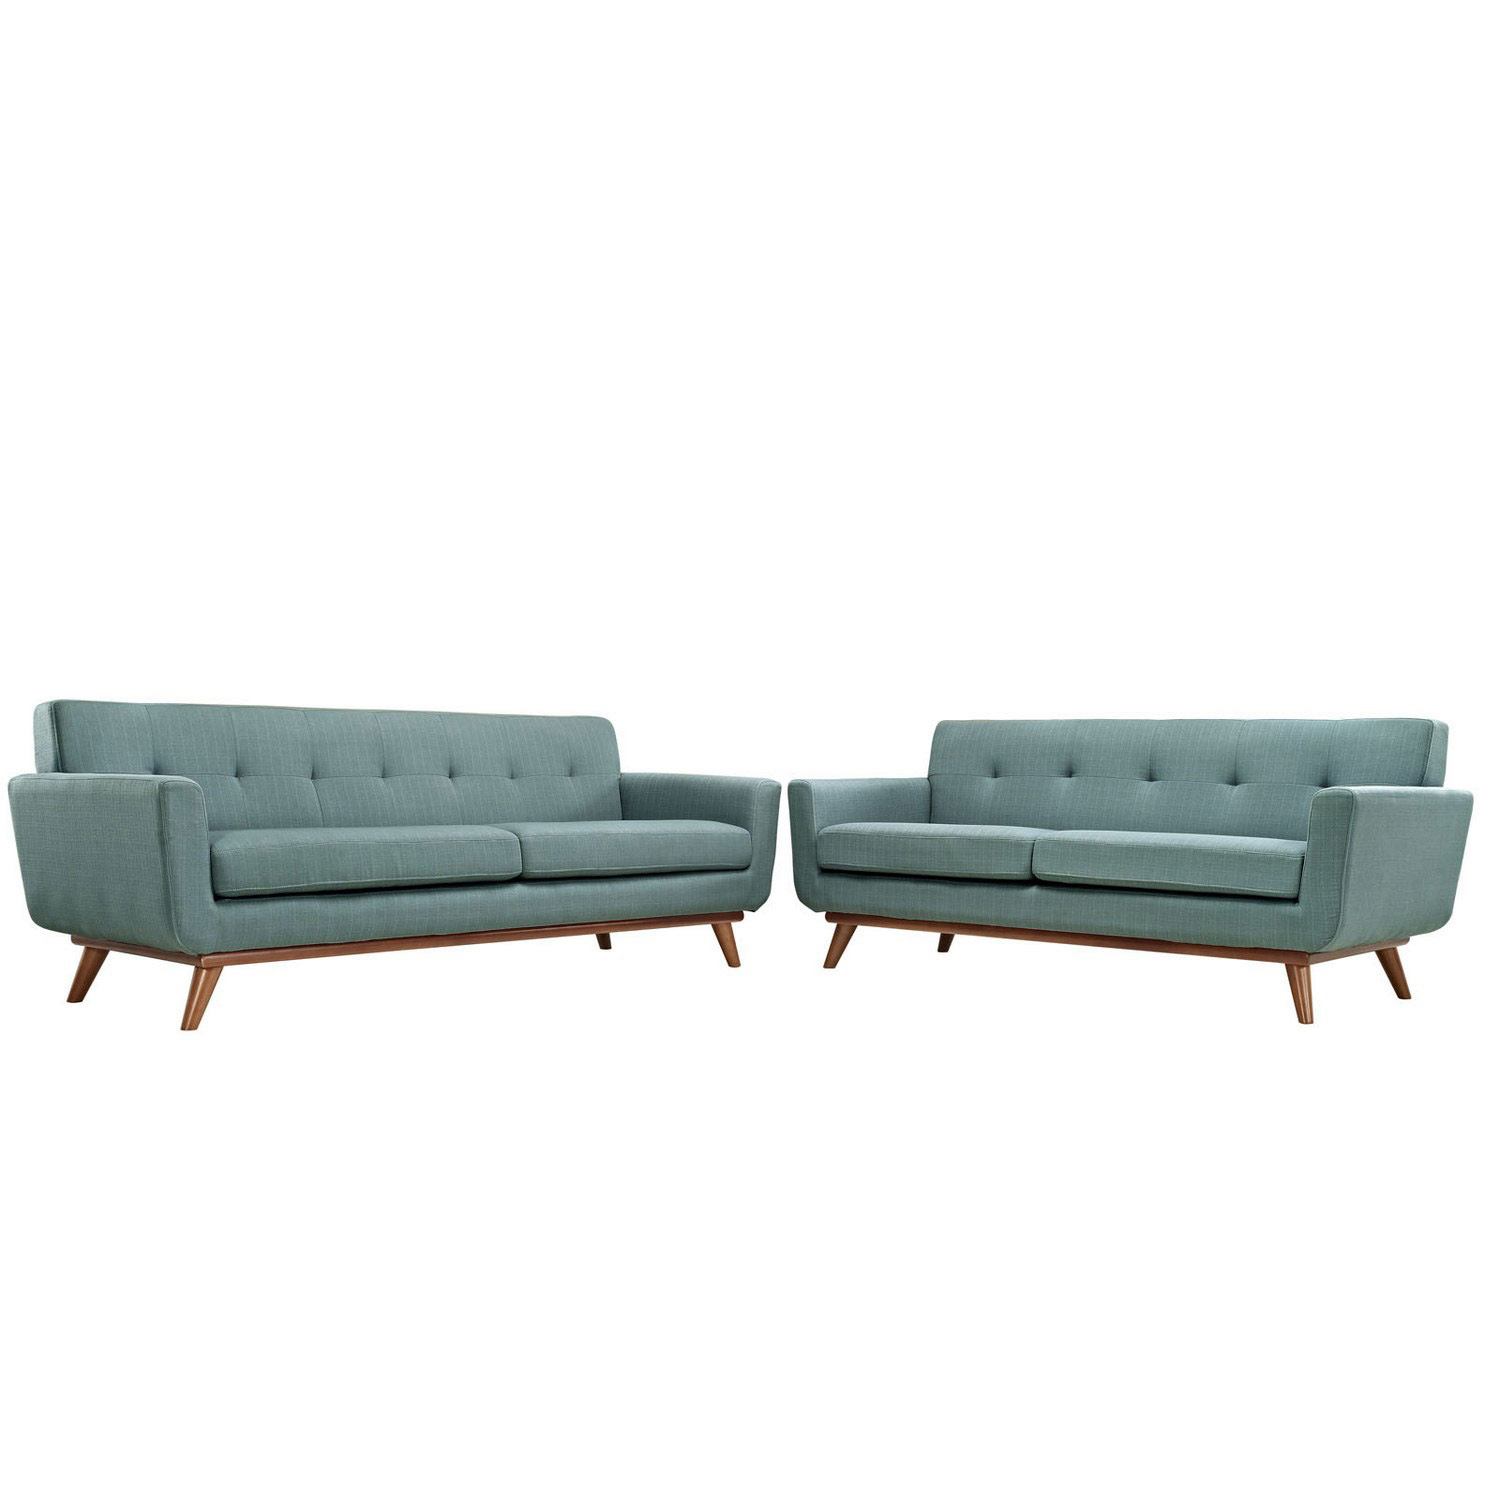 Modway Engage Loveseat and Sofa Set of 2 - Laguna